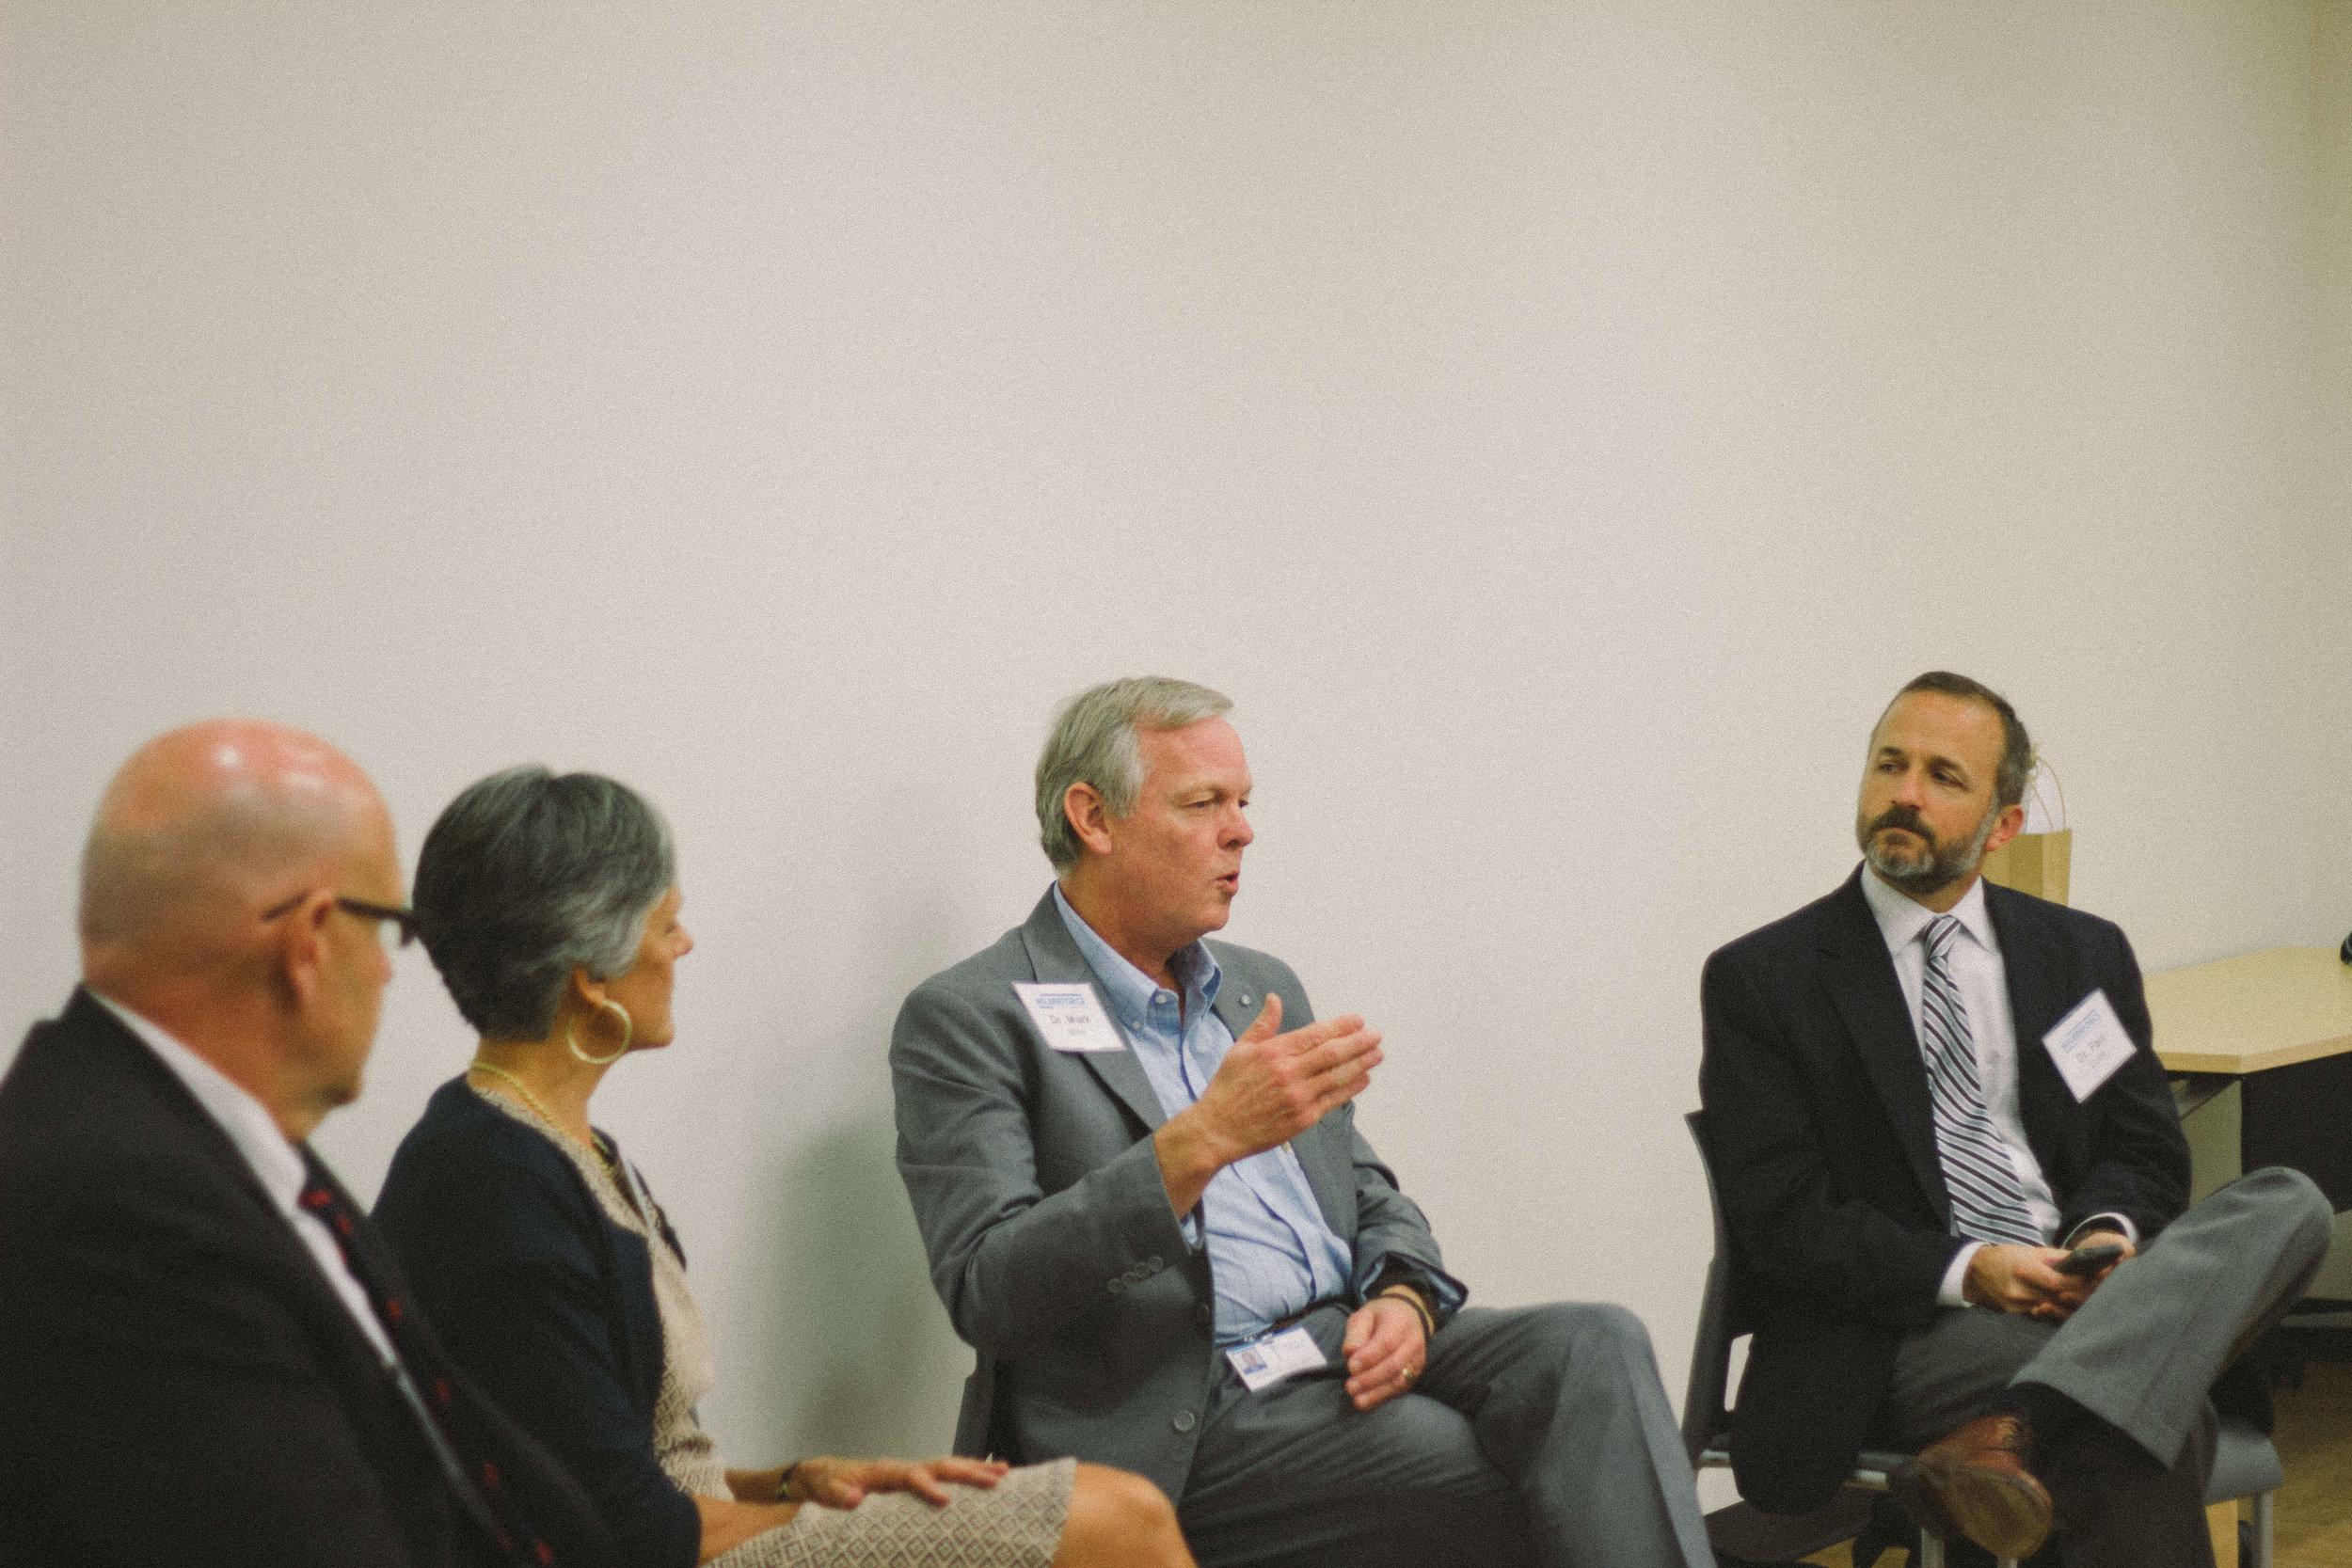 """Drs. John Thorp, Joan Perry, Mark Miller, and Farr Curlin on panel titled """"Medicine as Christian Vocation?""""."""